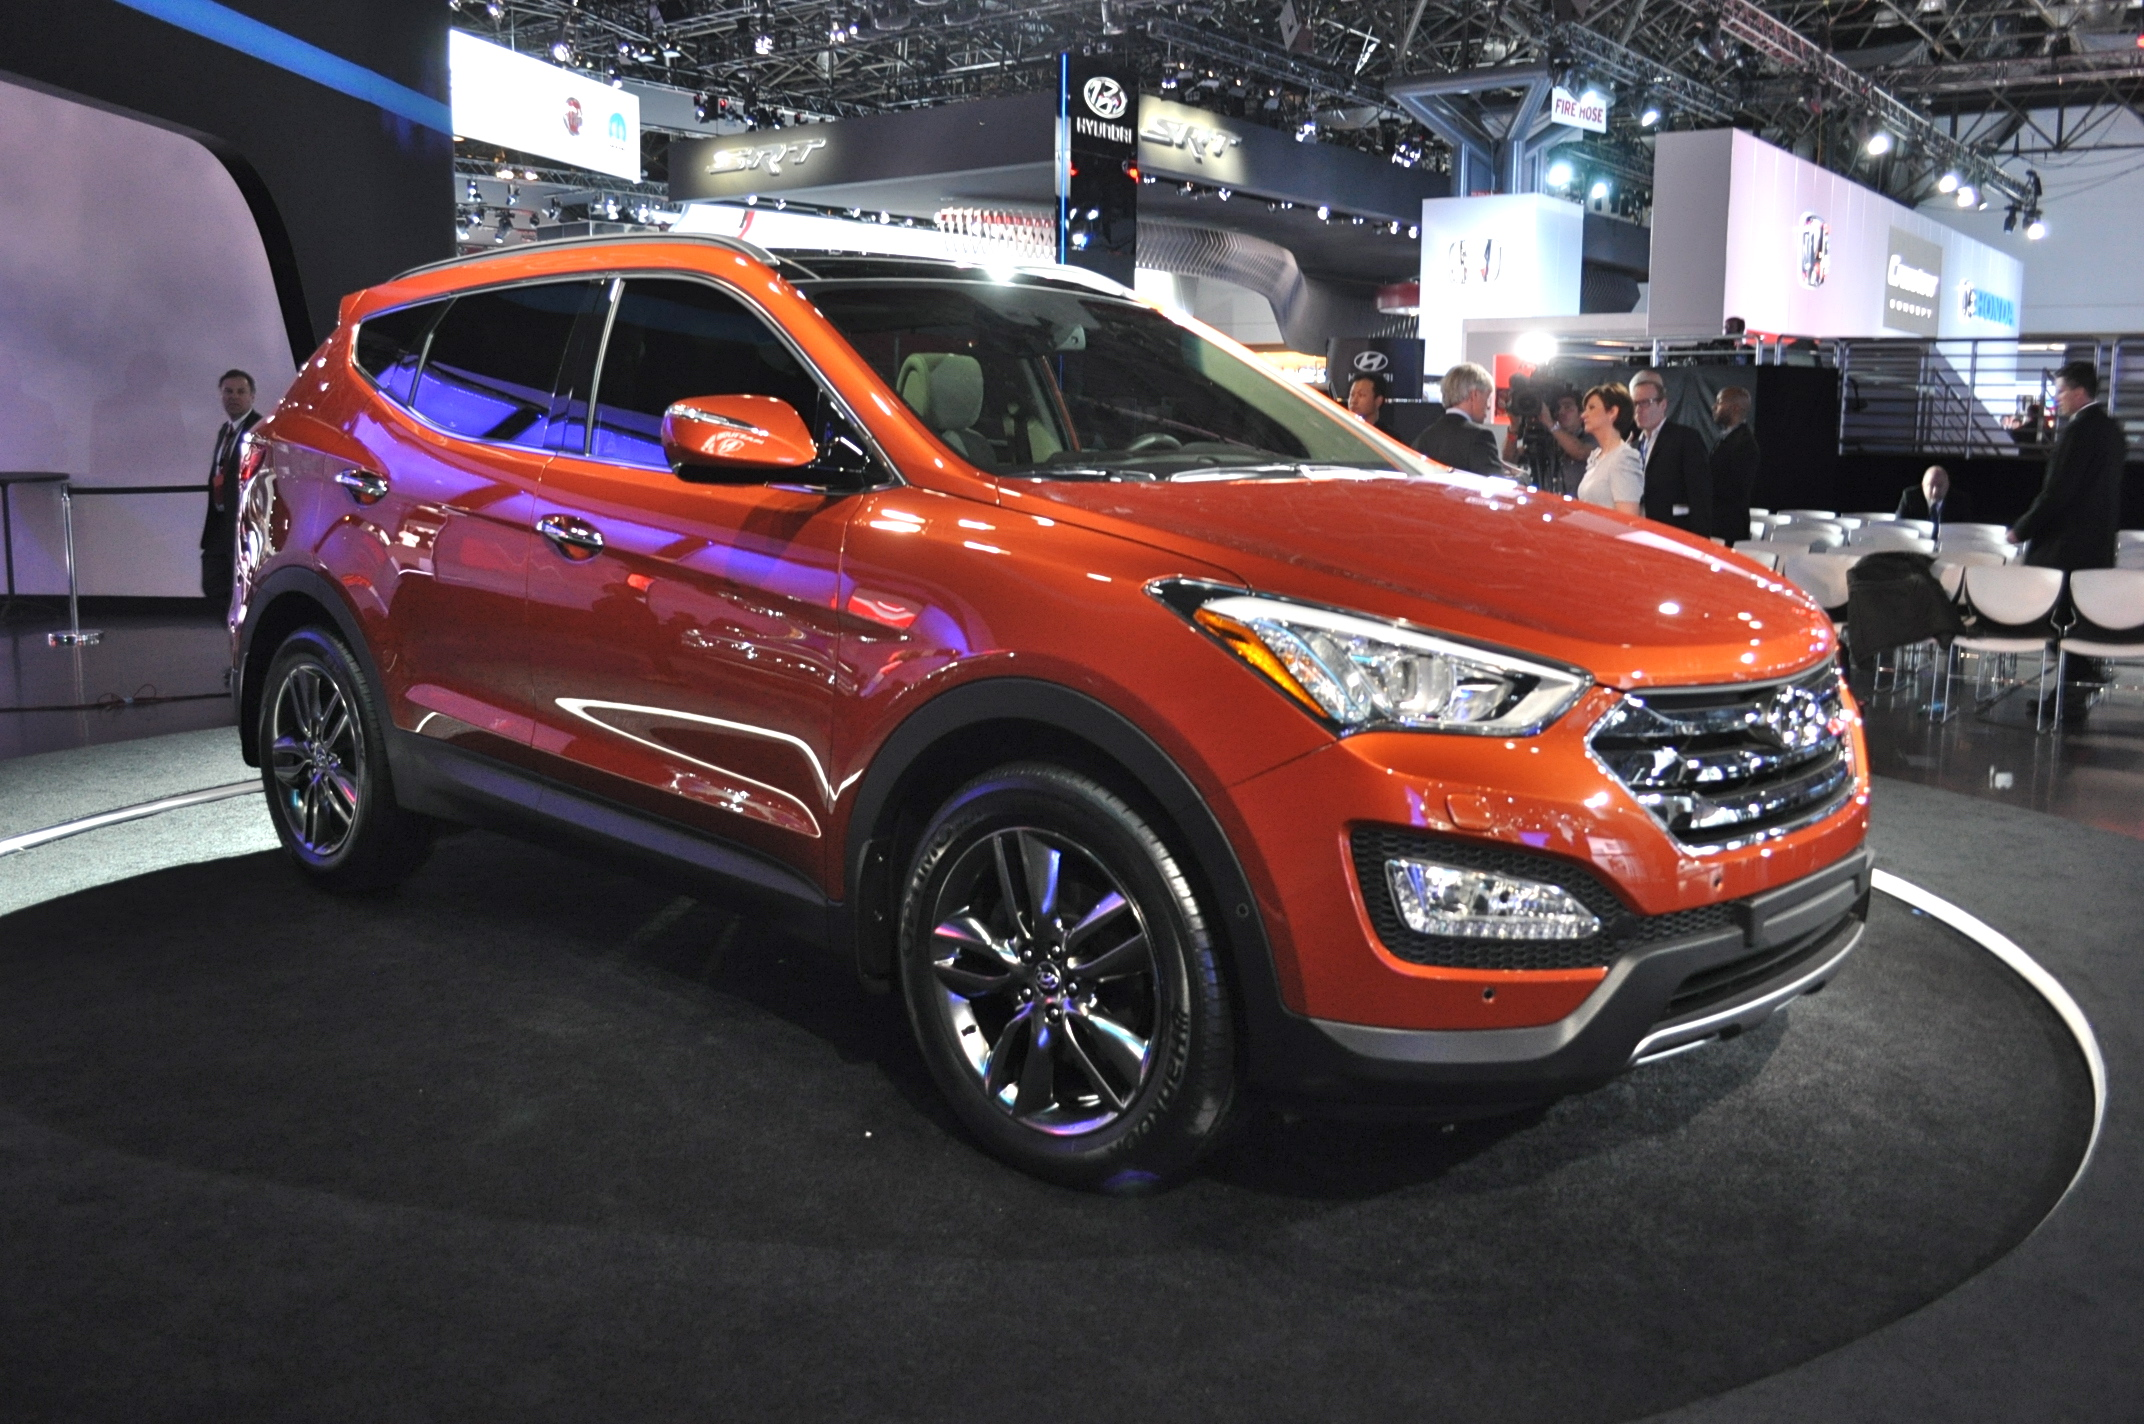 2013 Hyundai Santa Fe Walkaround Video